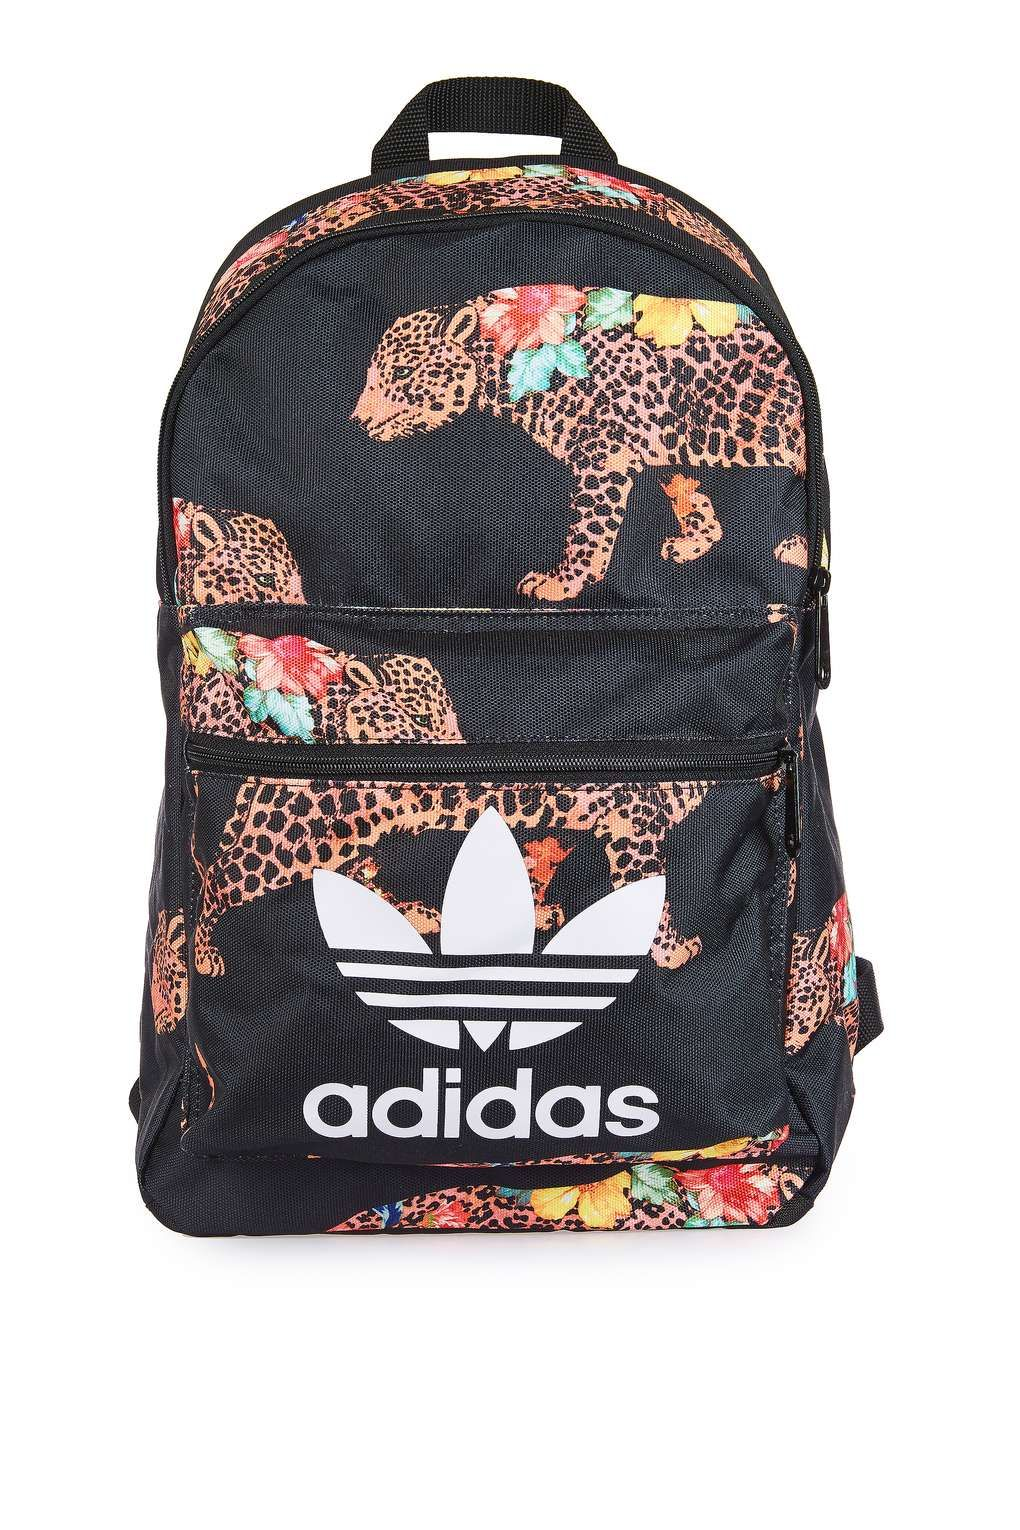 72155547a8 ONCADA Backpack by Adidas Originals in 2019